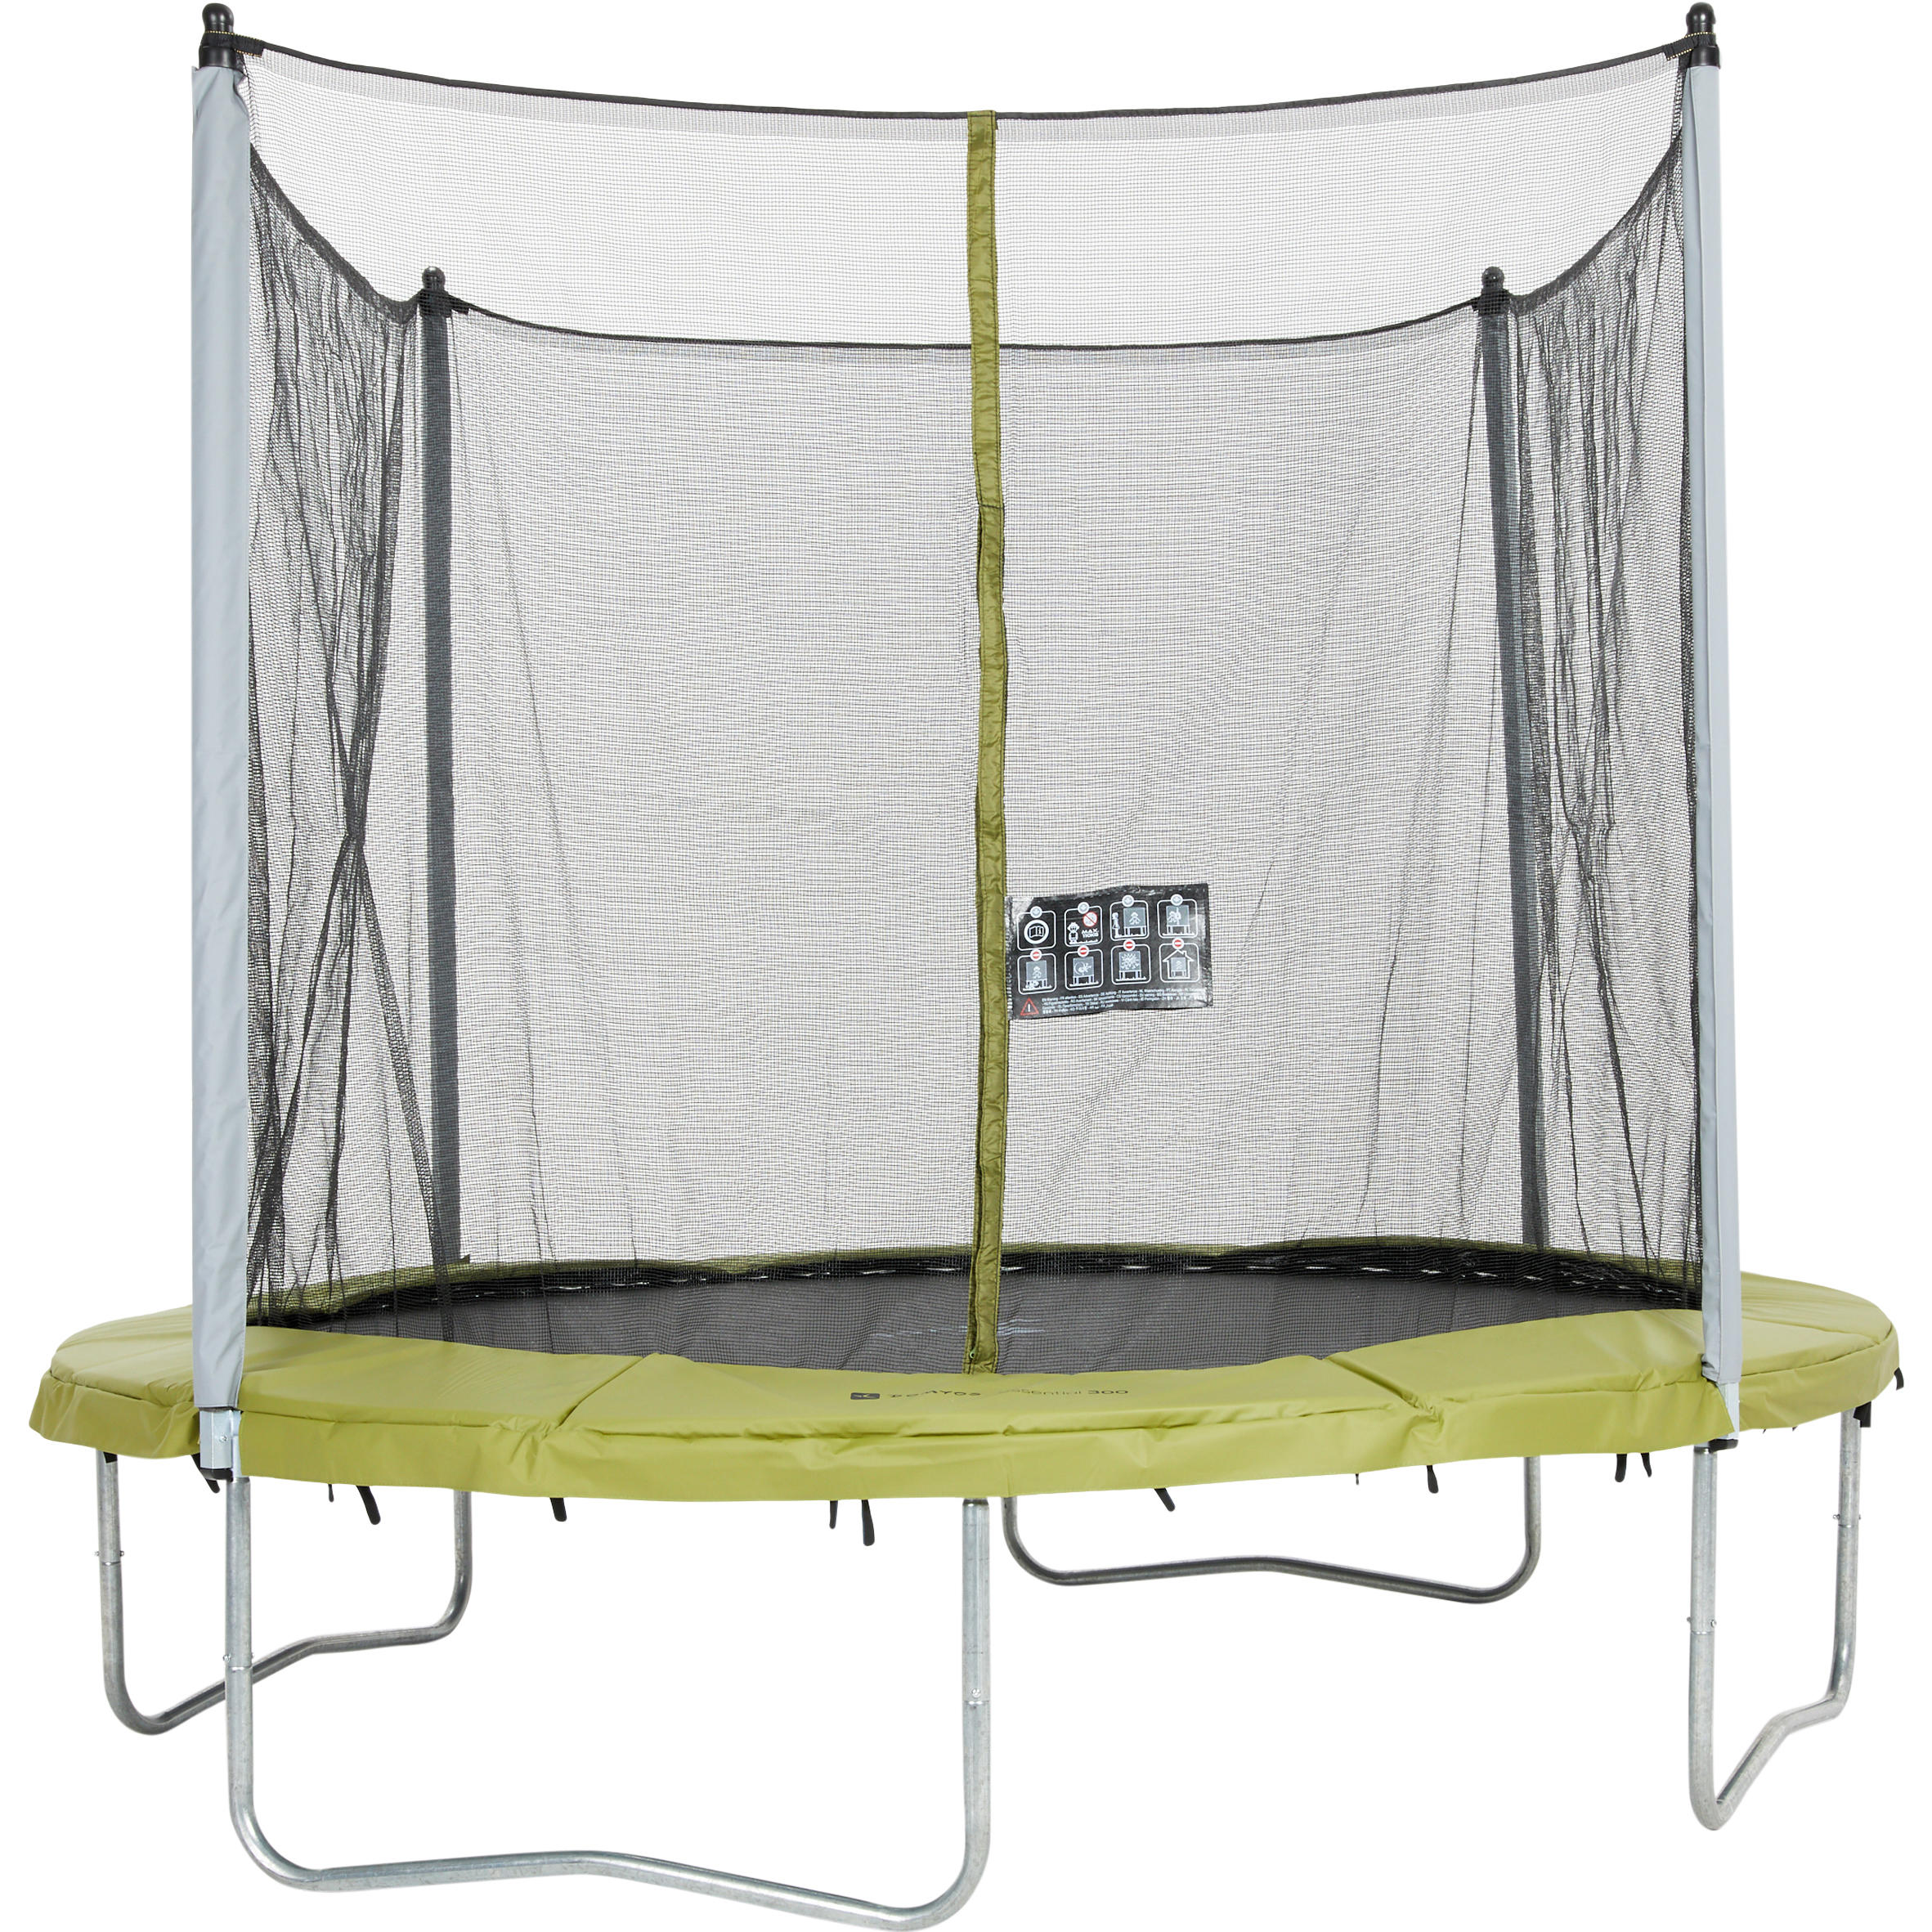 Essential 300 Trampoline and Protective Netting